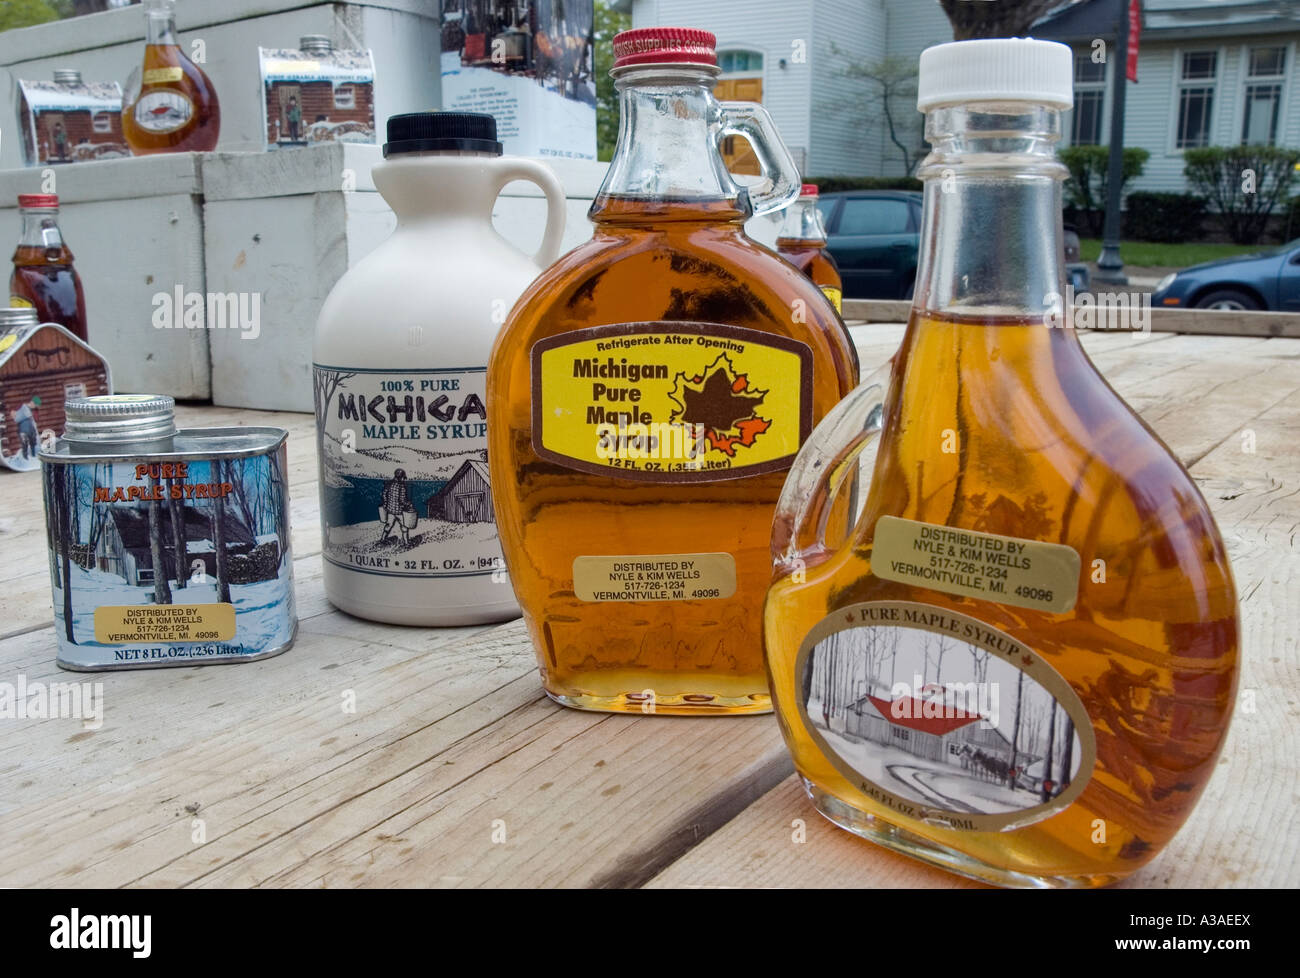 Maple Syrup Festival Bottles Vermontville Michigan USA